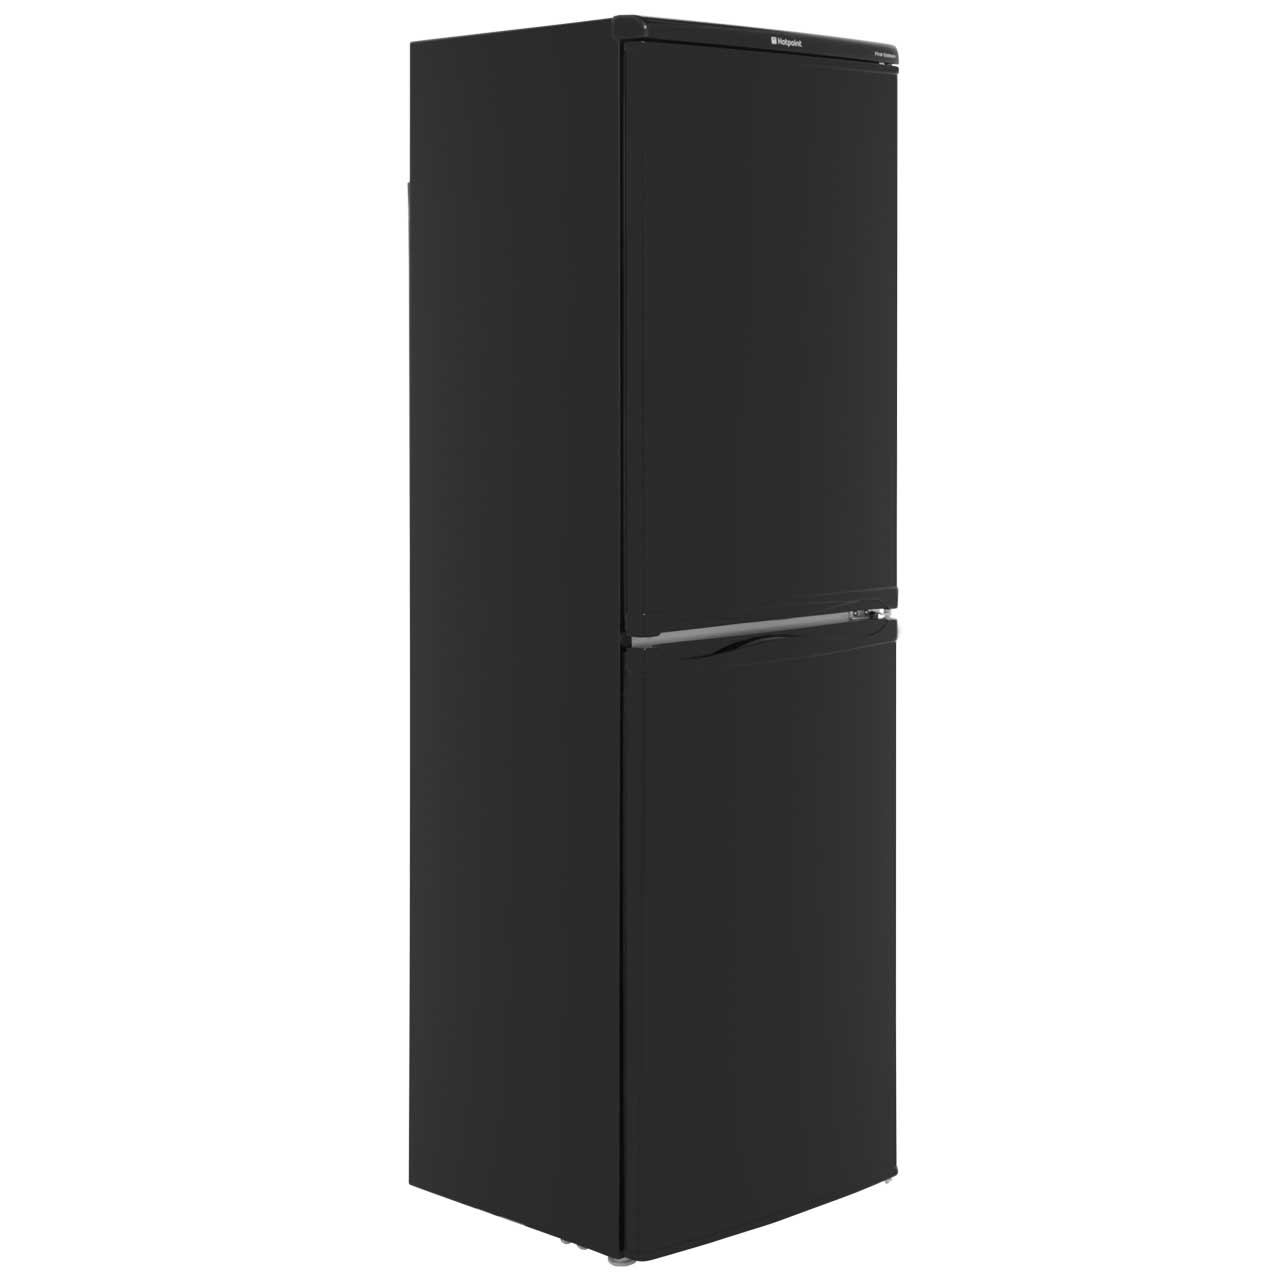 Hotpoint First Edition RFAA52K 50/50 Fridge Freezer - Black